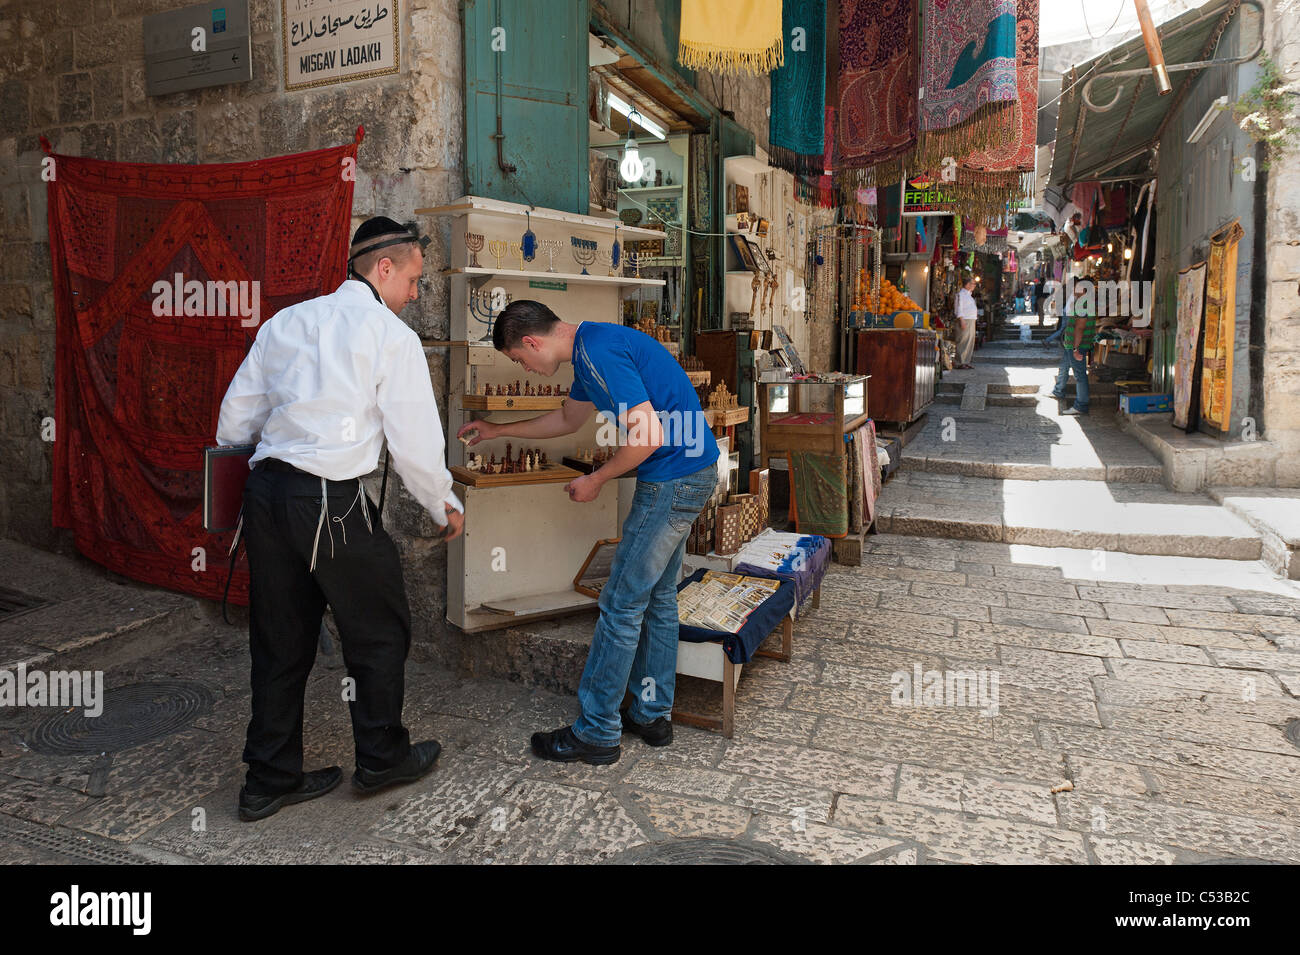 A religious Jew helps an Arab seller arrange his goods - Stock Image